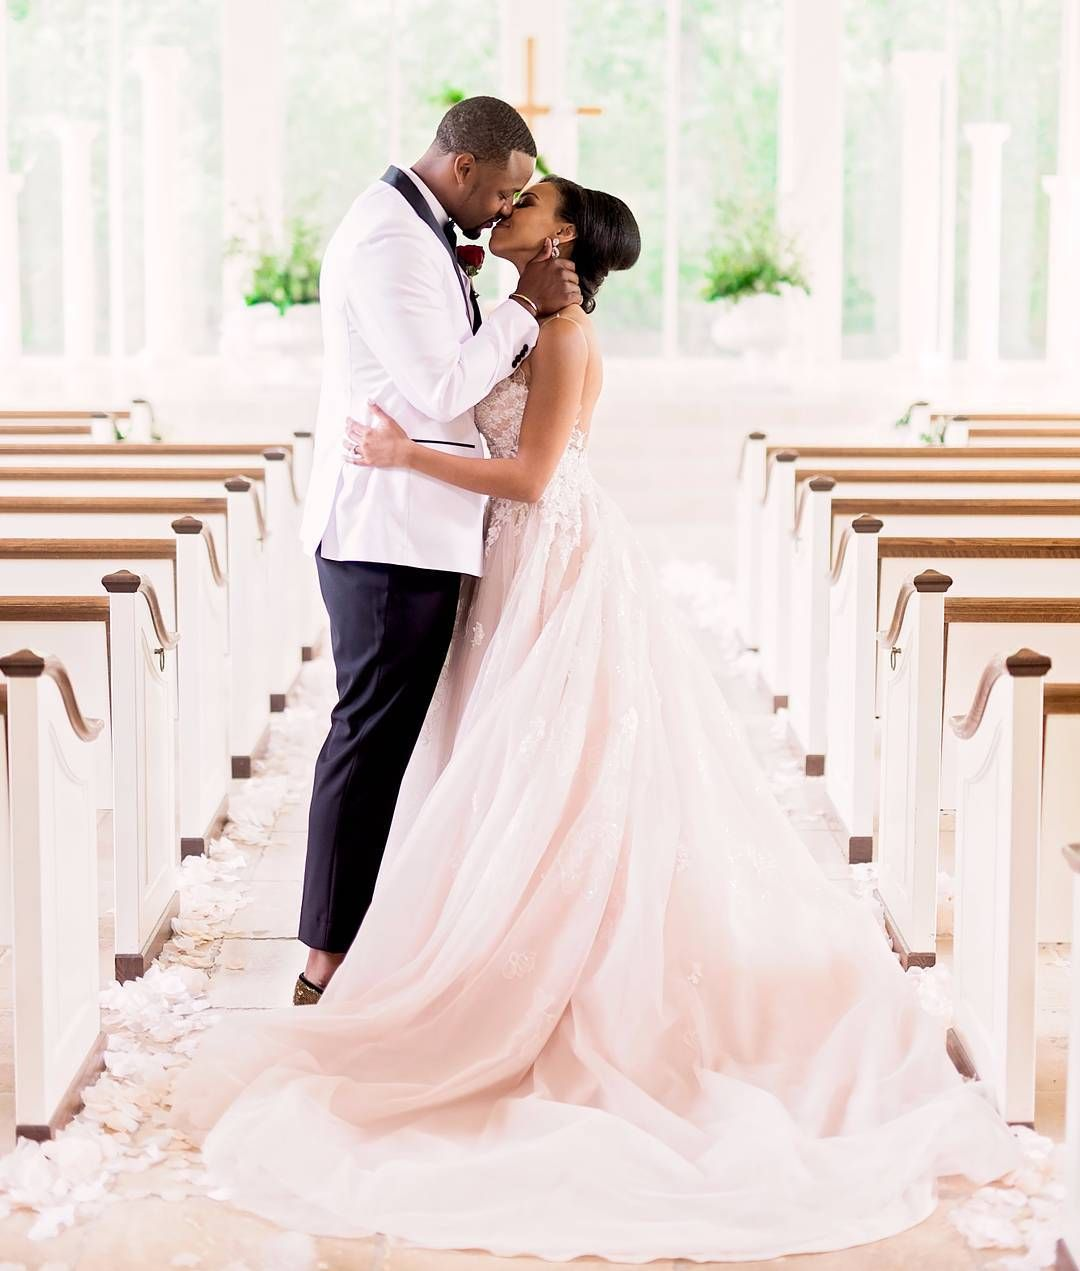 Lace up wedding dress november 2018 The details of the Moore Wedding were everything Photo by